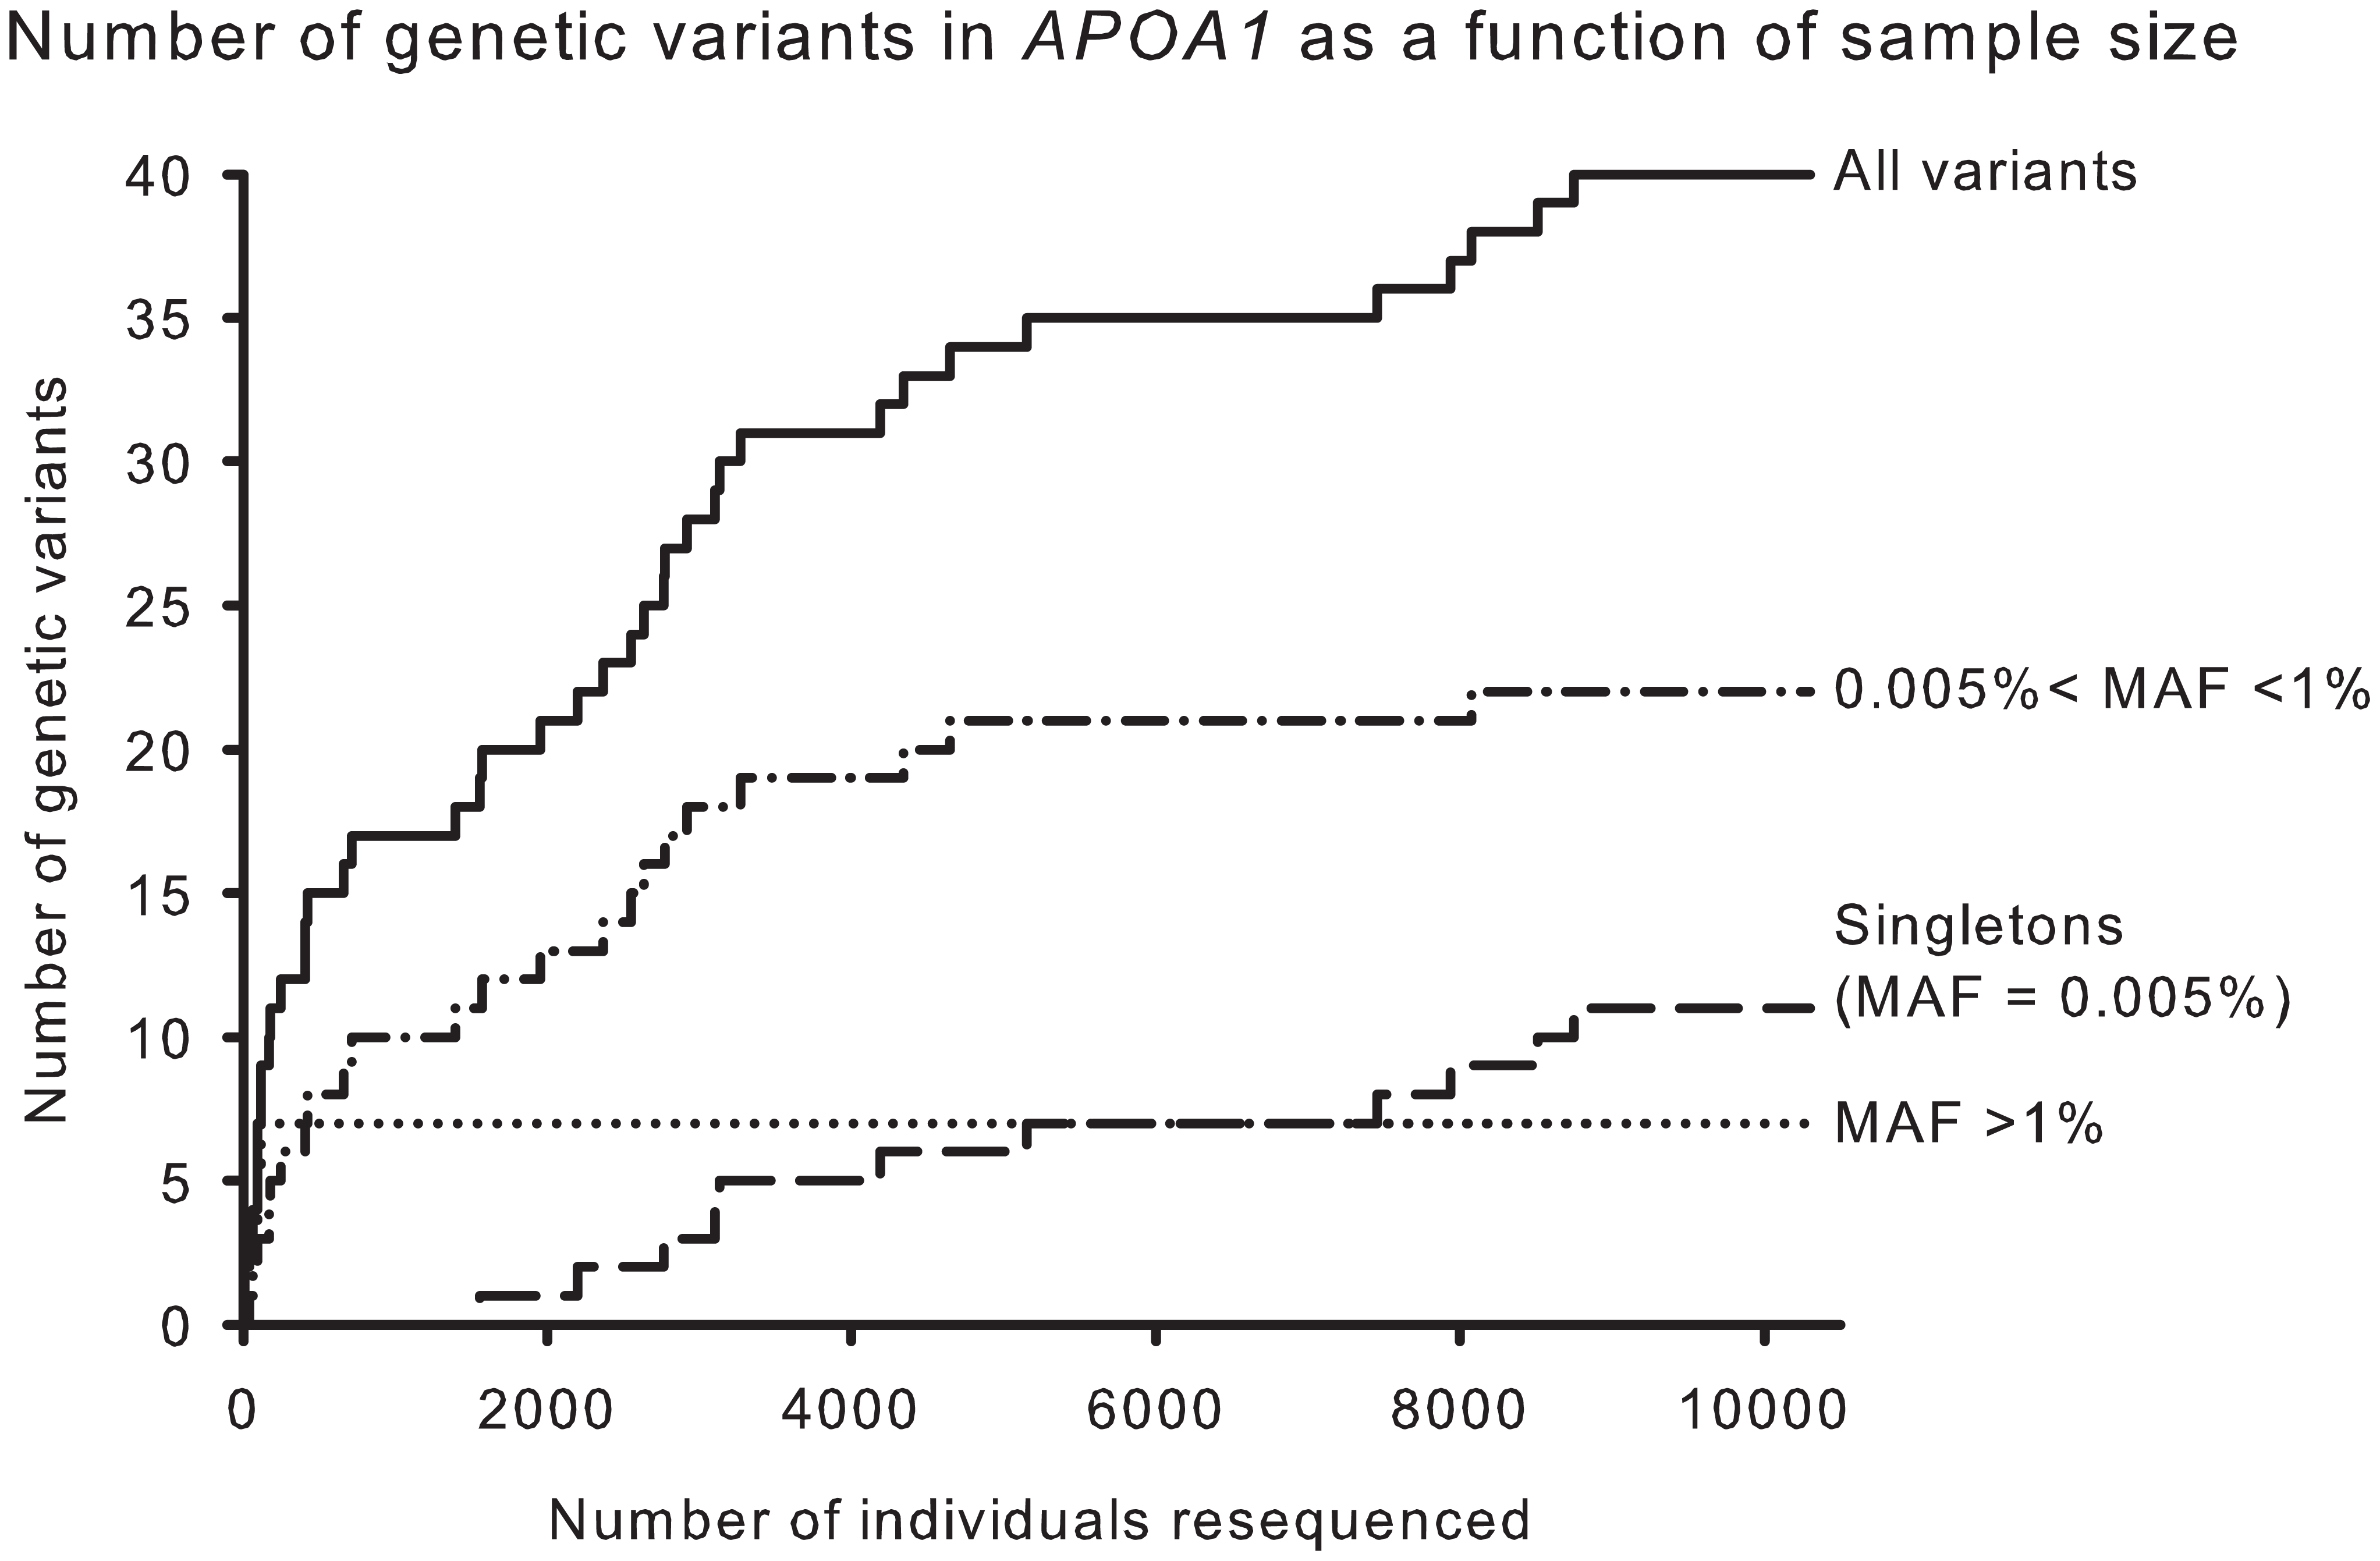 Cumulative number of genetic variants in <i>APOA1</i> as a function of number of individuals resequenced.